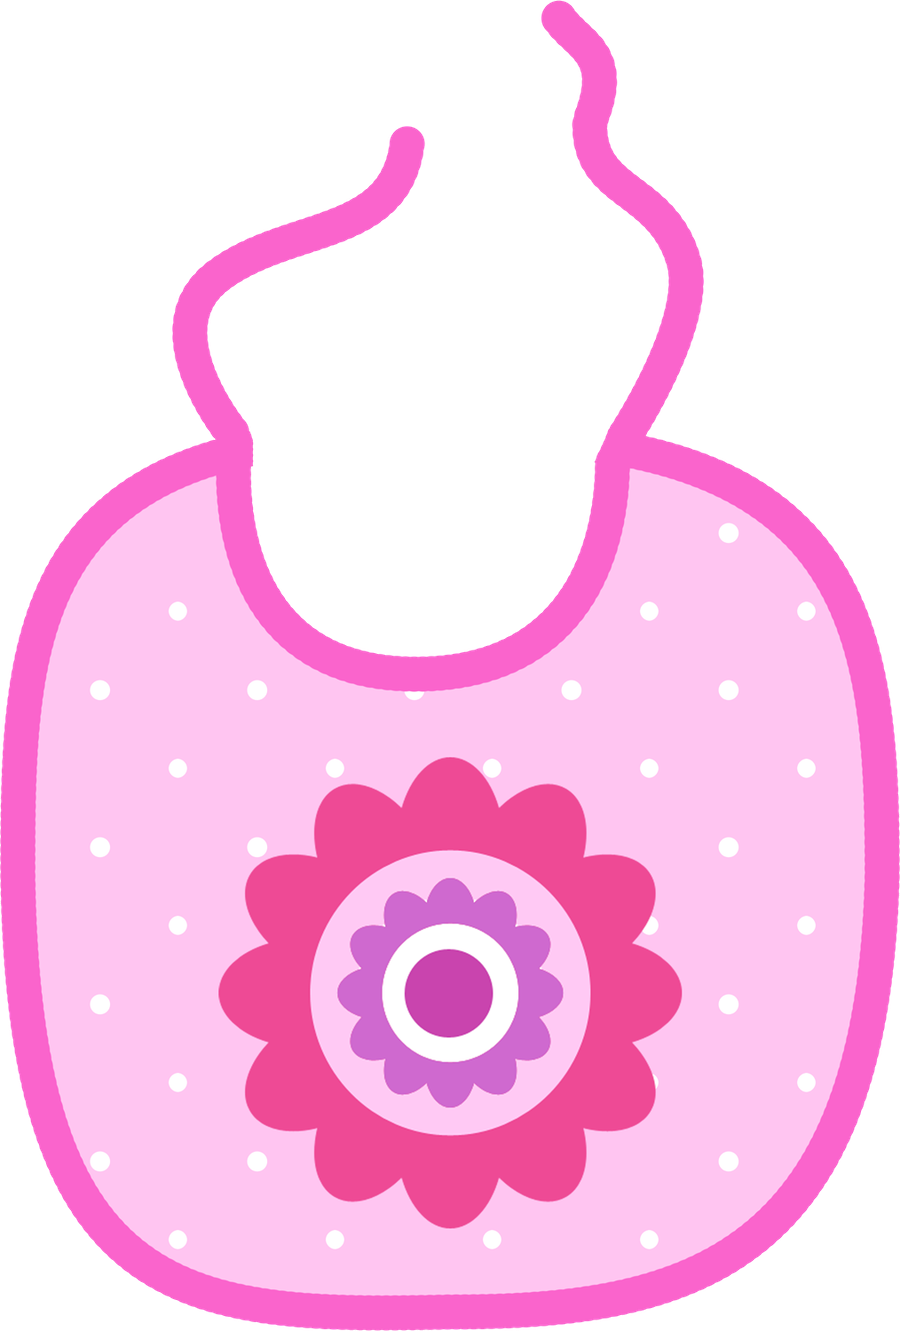 Bibs for babies clipart